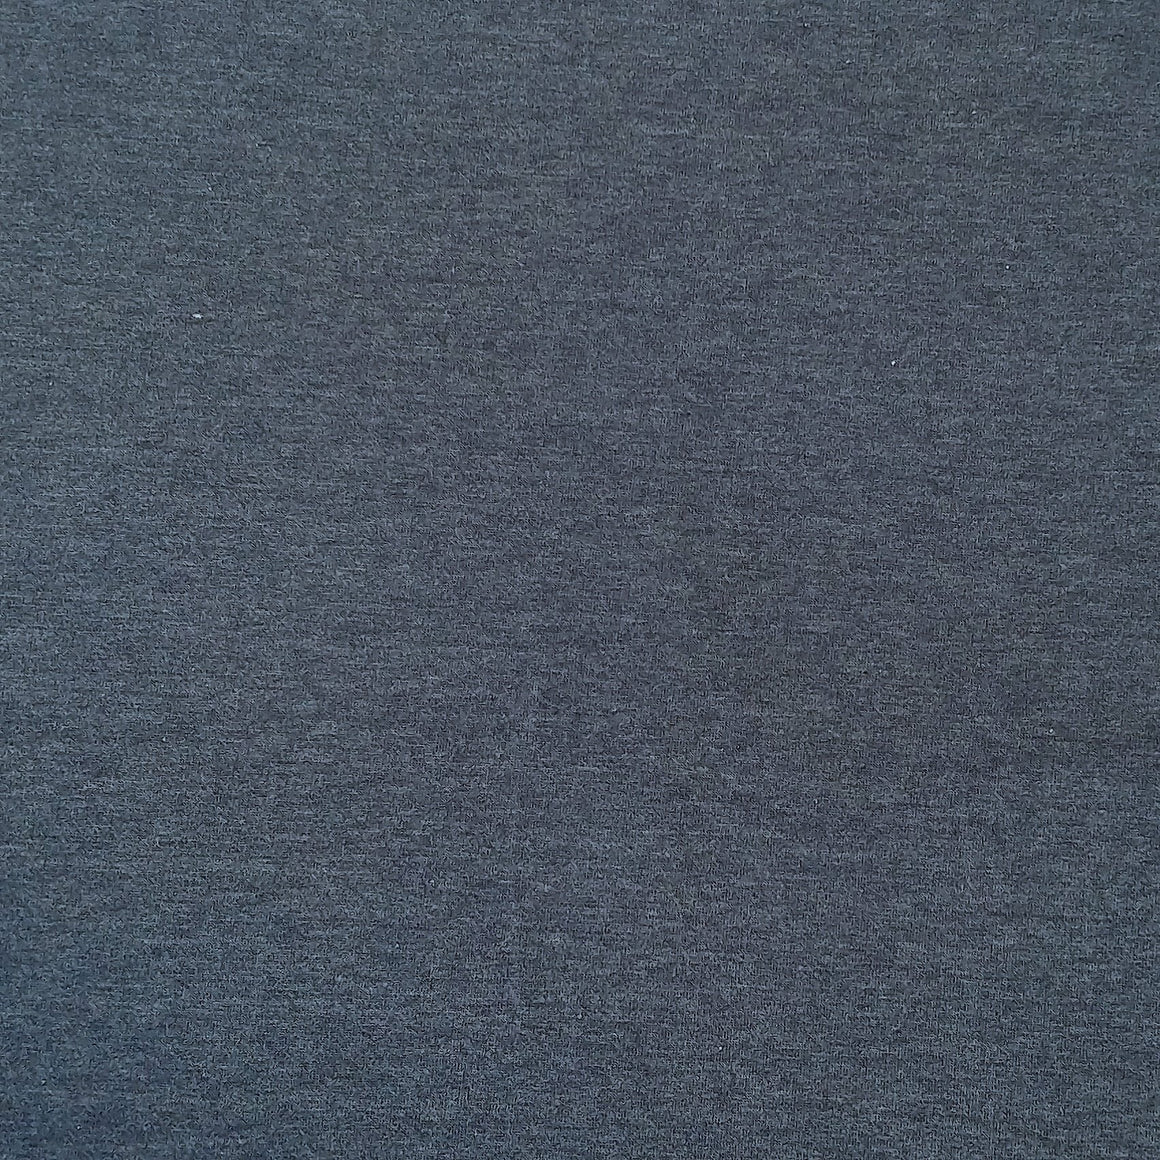 Solid Heathered Dark Denim 4 Way Stretch 10 oz Cotton Lycra Jersey Knit Fabric - Raspberry Creek Fabrics